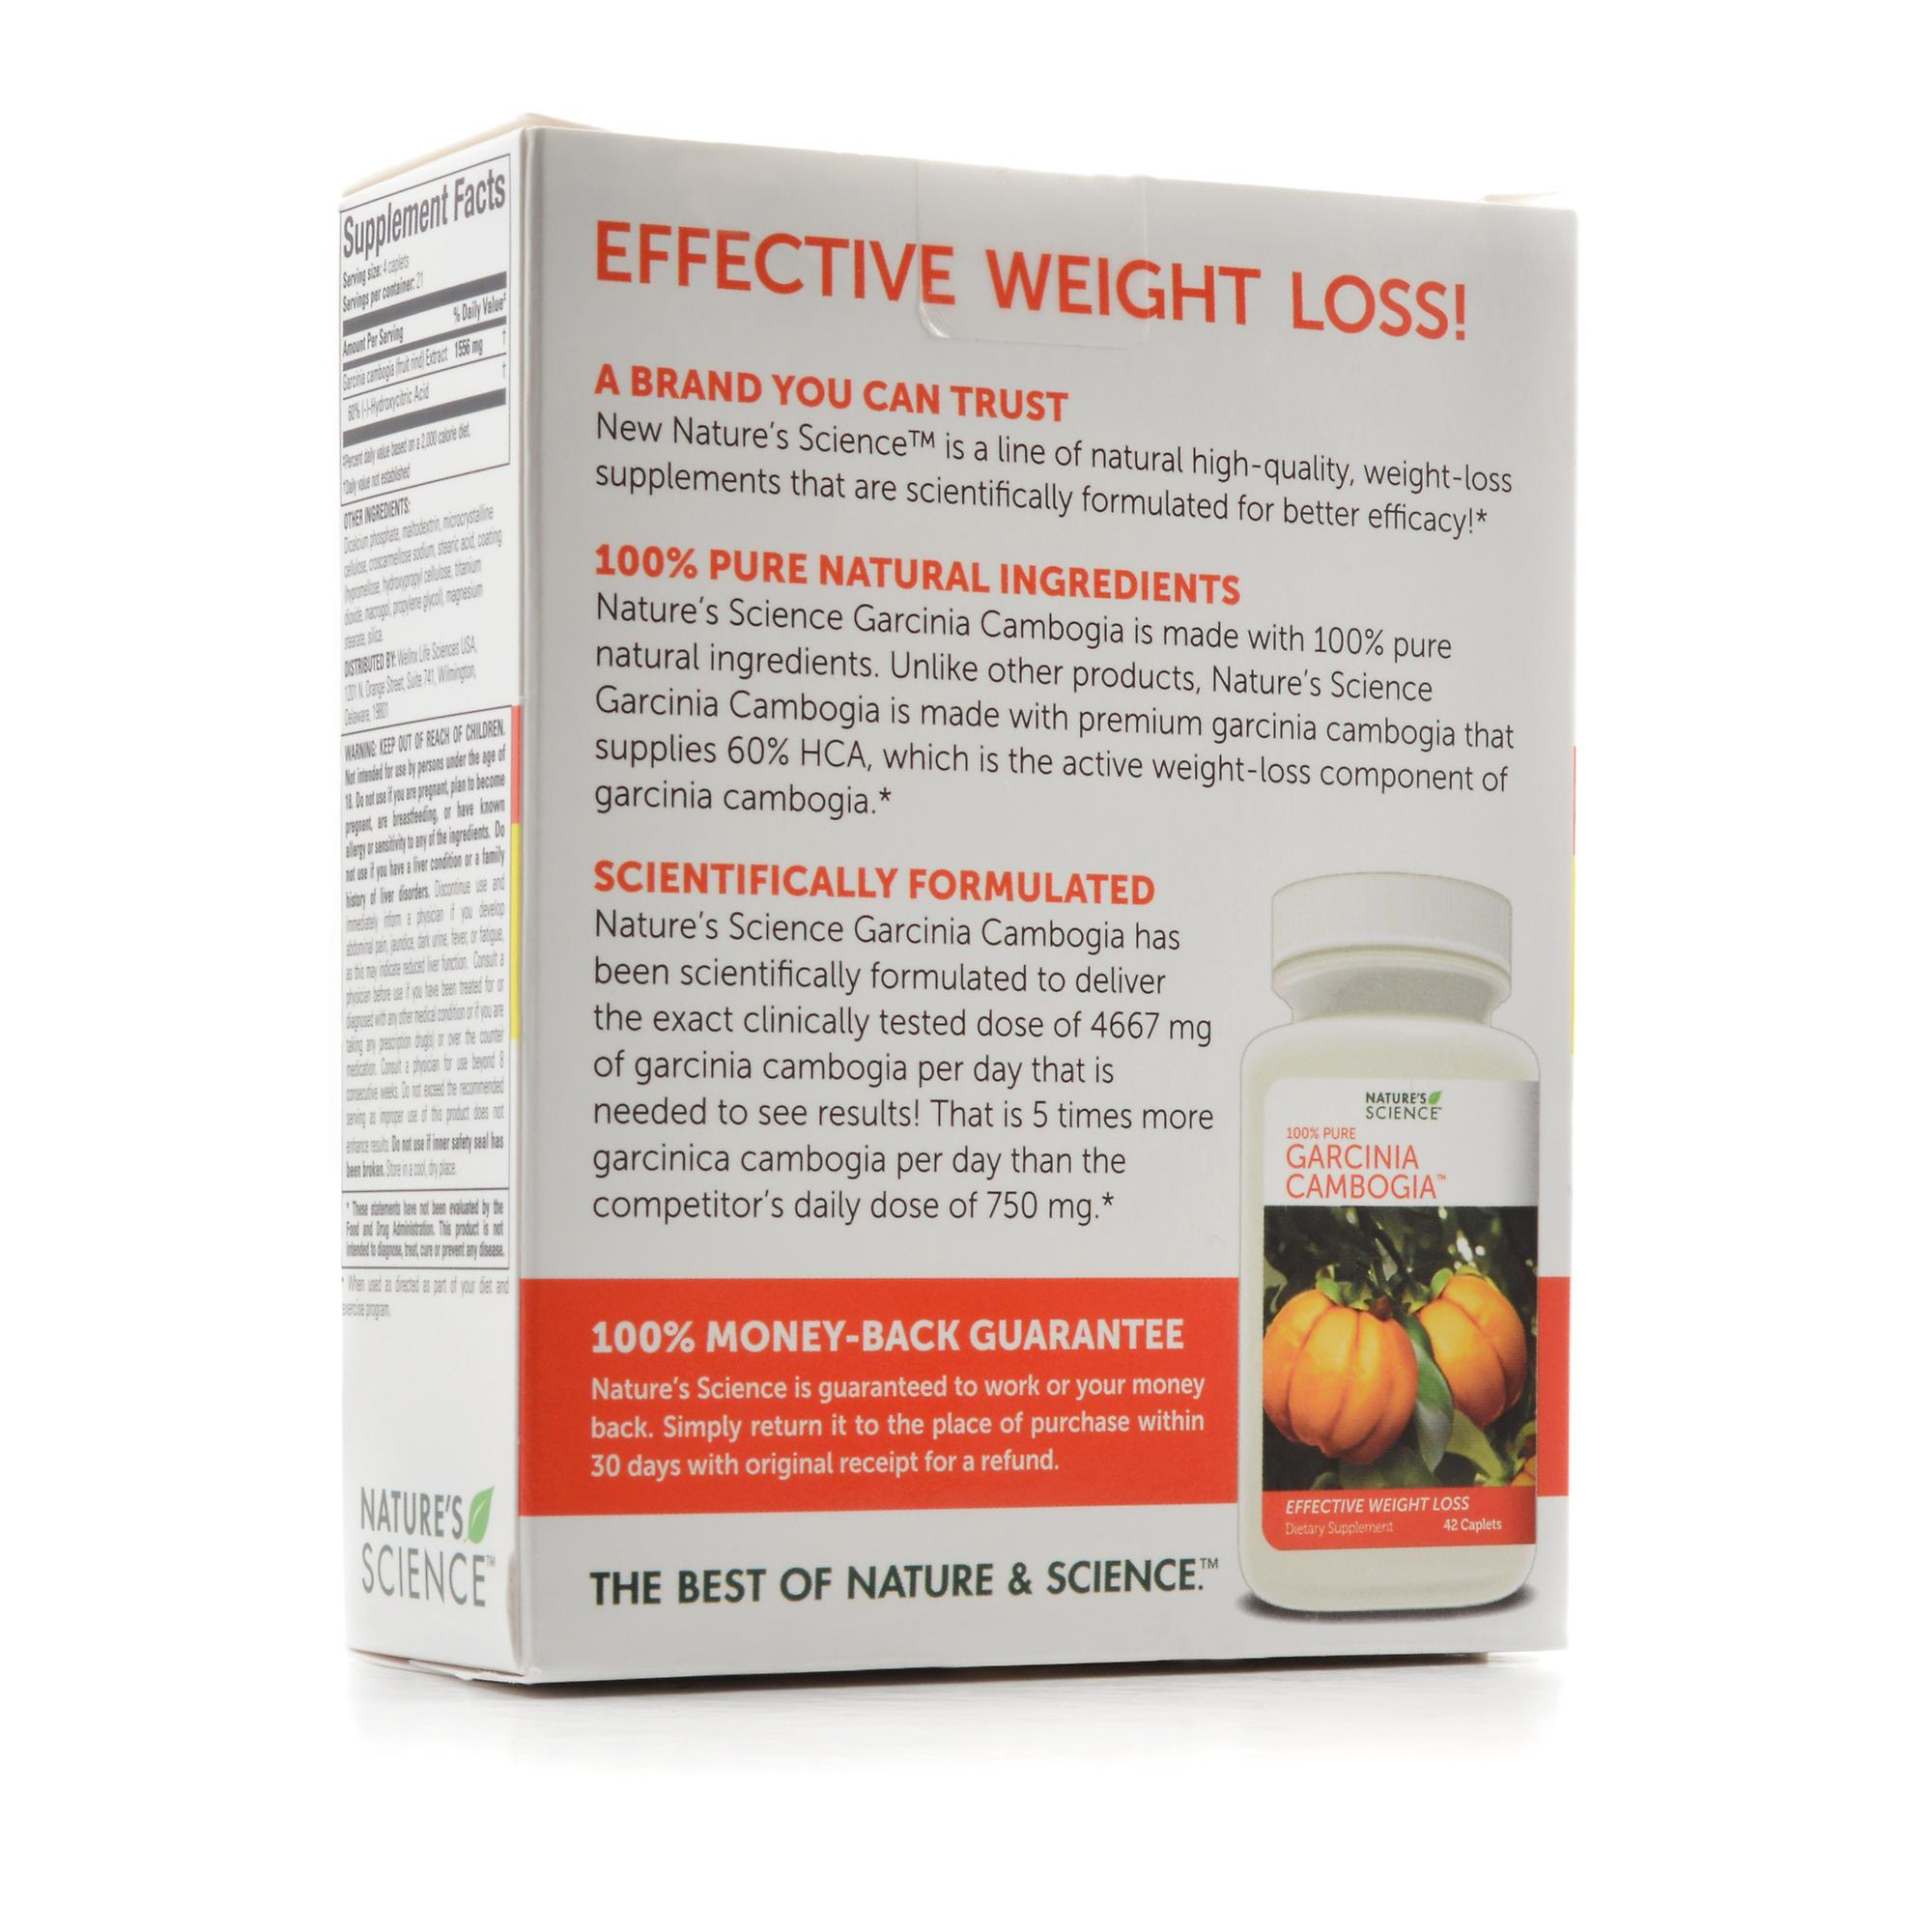 Nature39;s Science 100% Pure Garcinia Cambogia Review  LabDoor